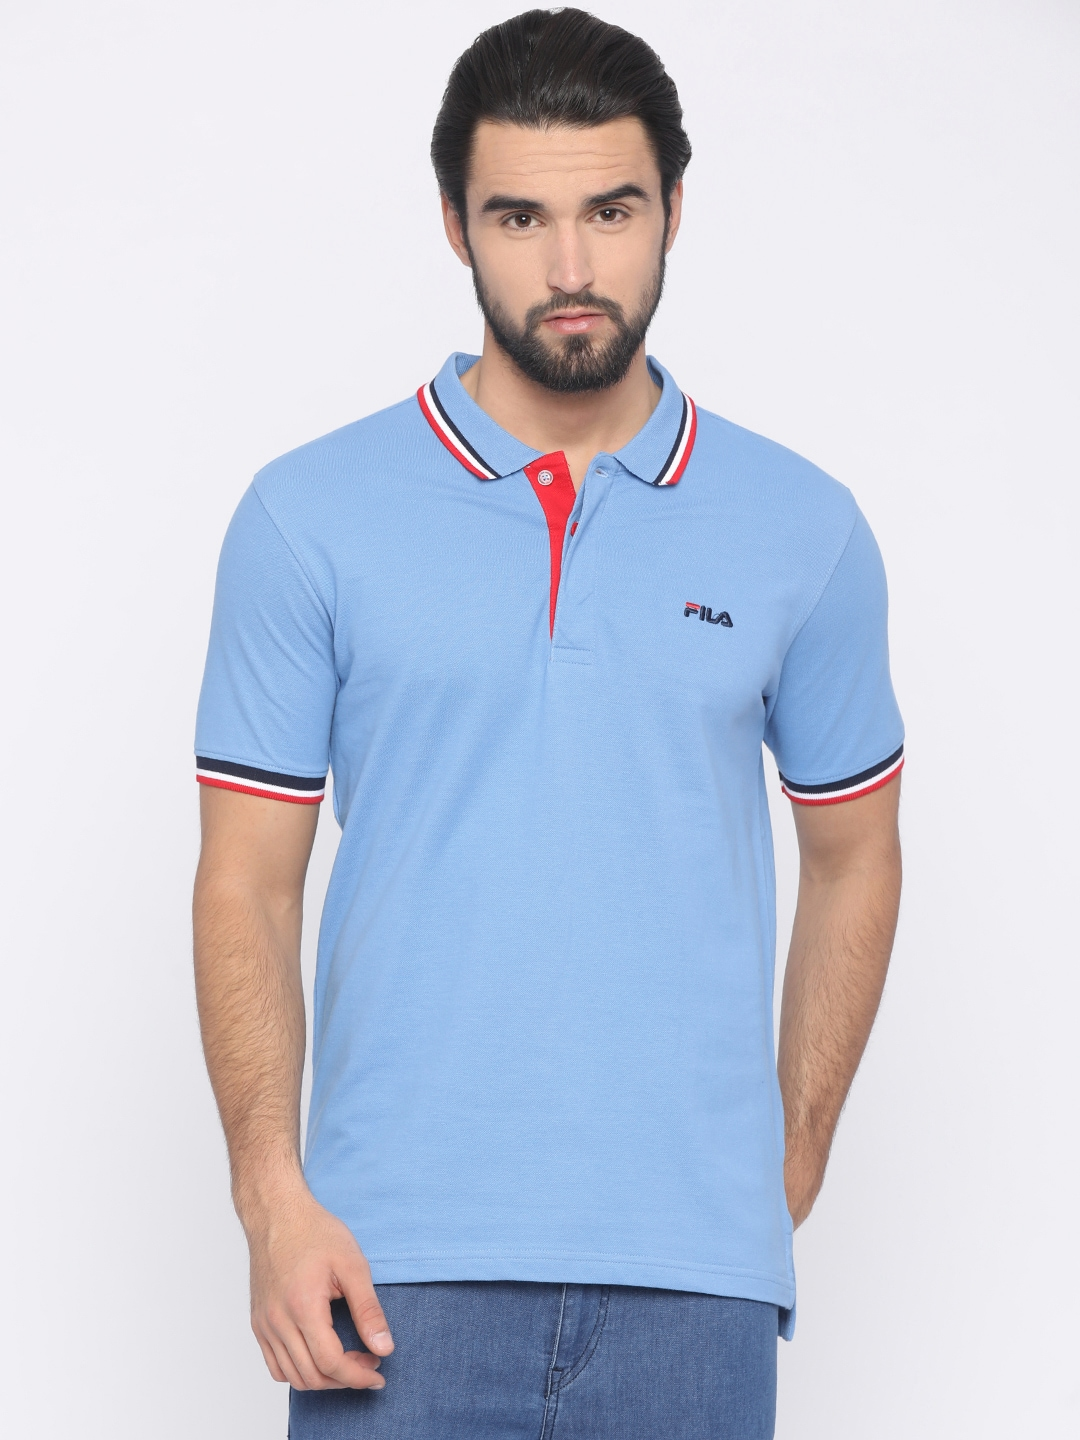 be830ecc Fila - Exclusive Fila Online Store in India at Myntra